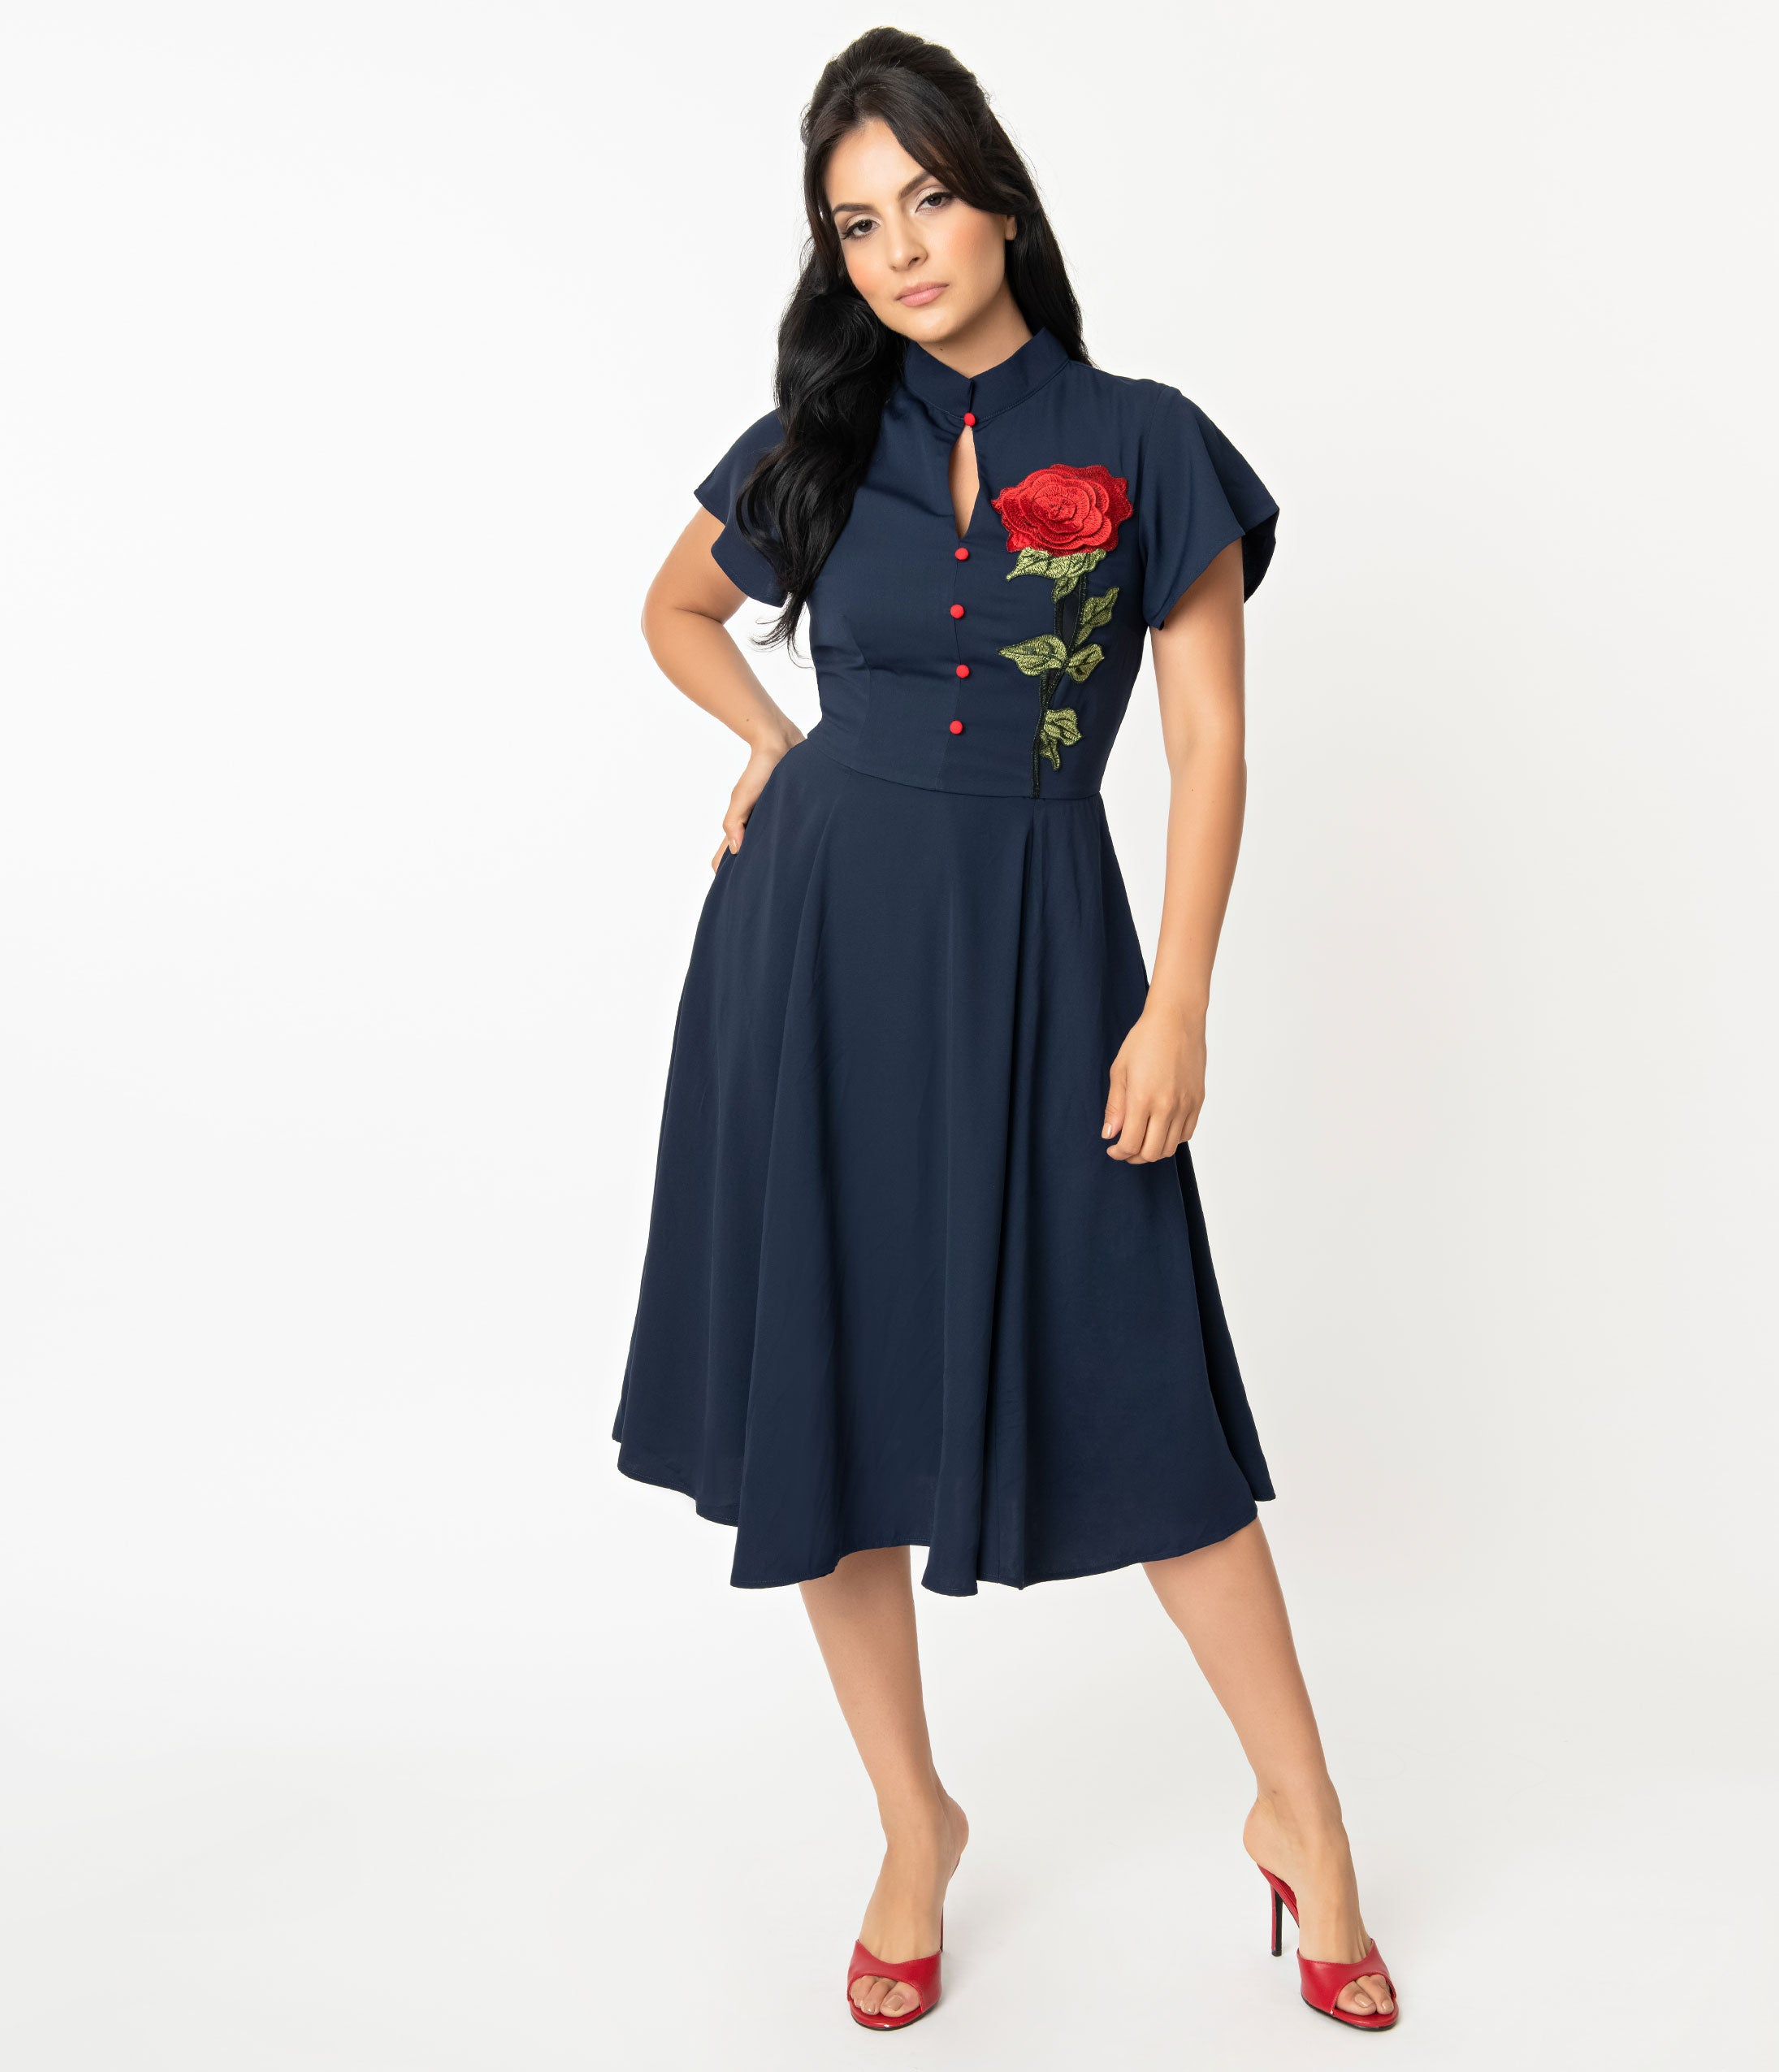 1940s Dresses | 40s Dress, Swing Dress Unique Vintage Navy  Embroidered Red Rose Baltimore Swing Dress $98.00 AT vintagedancer.com